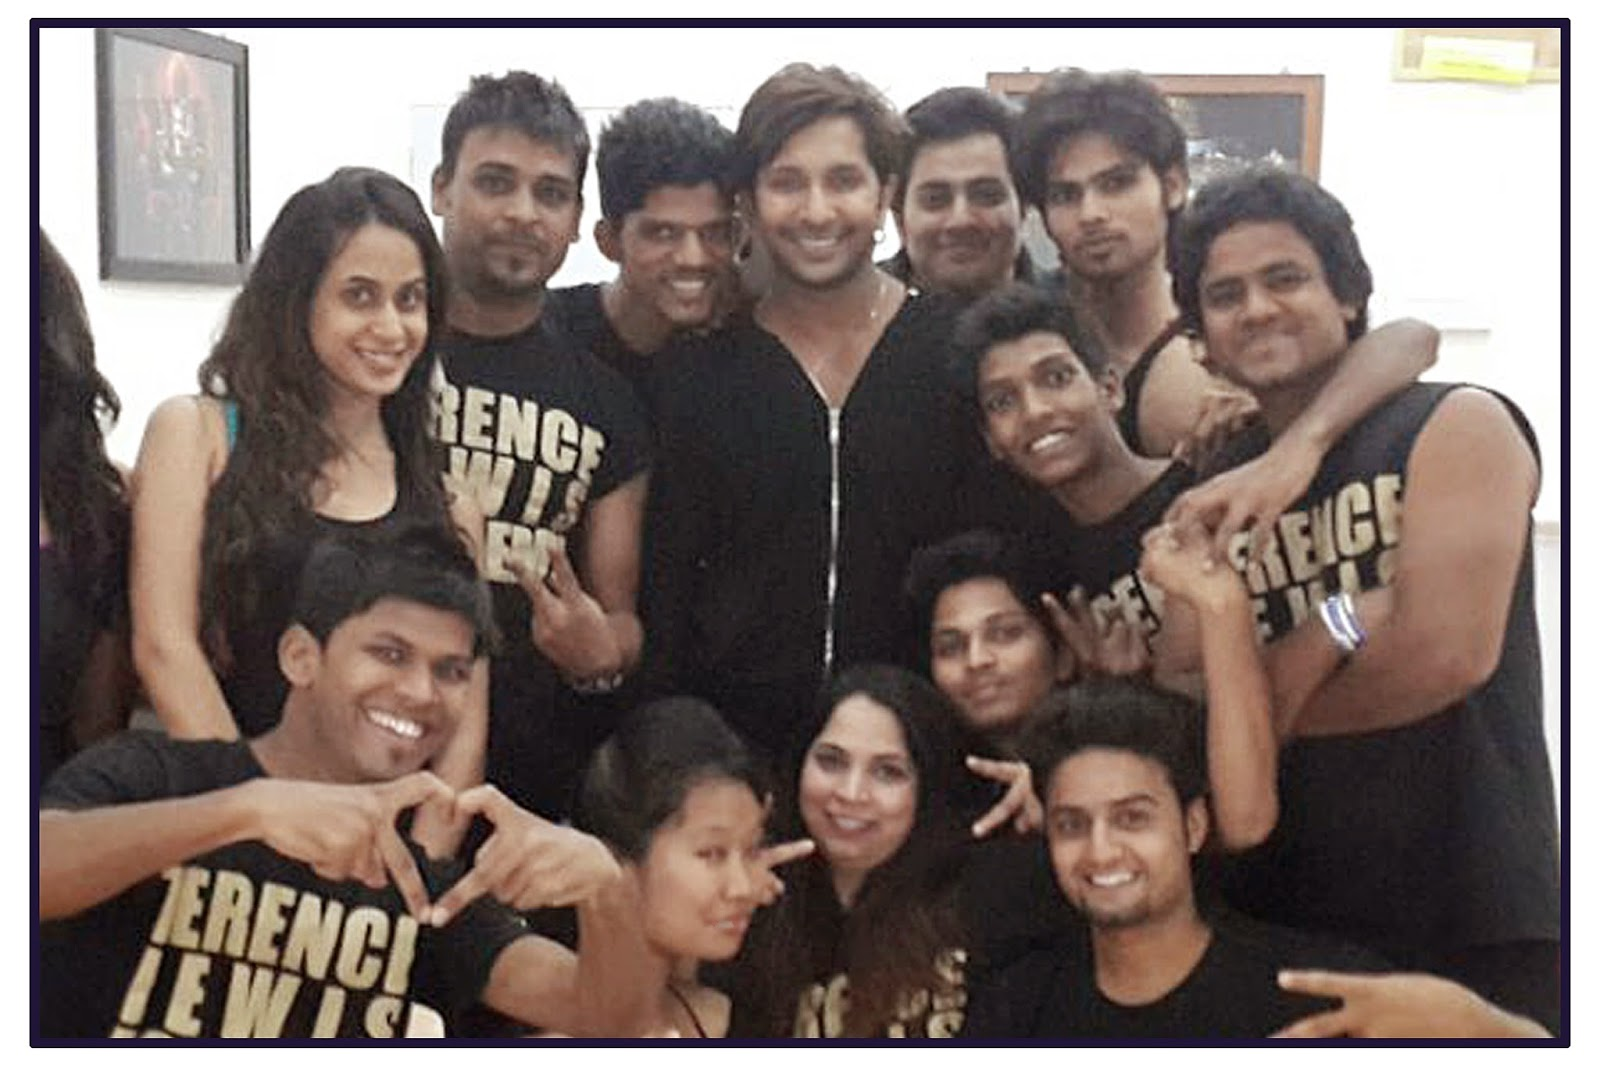 Terence Lewis Dance Academy by Terence Lewis Dance